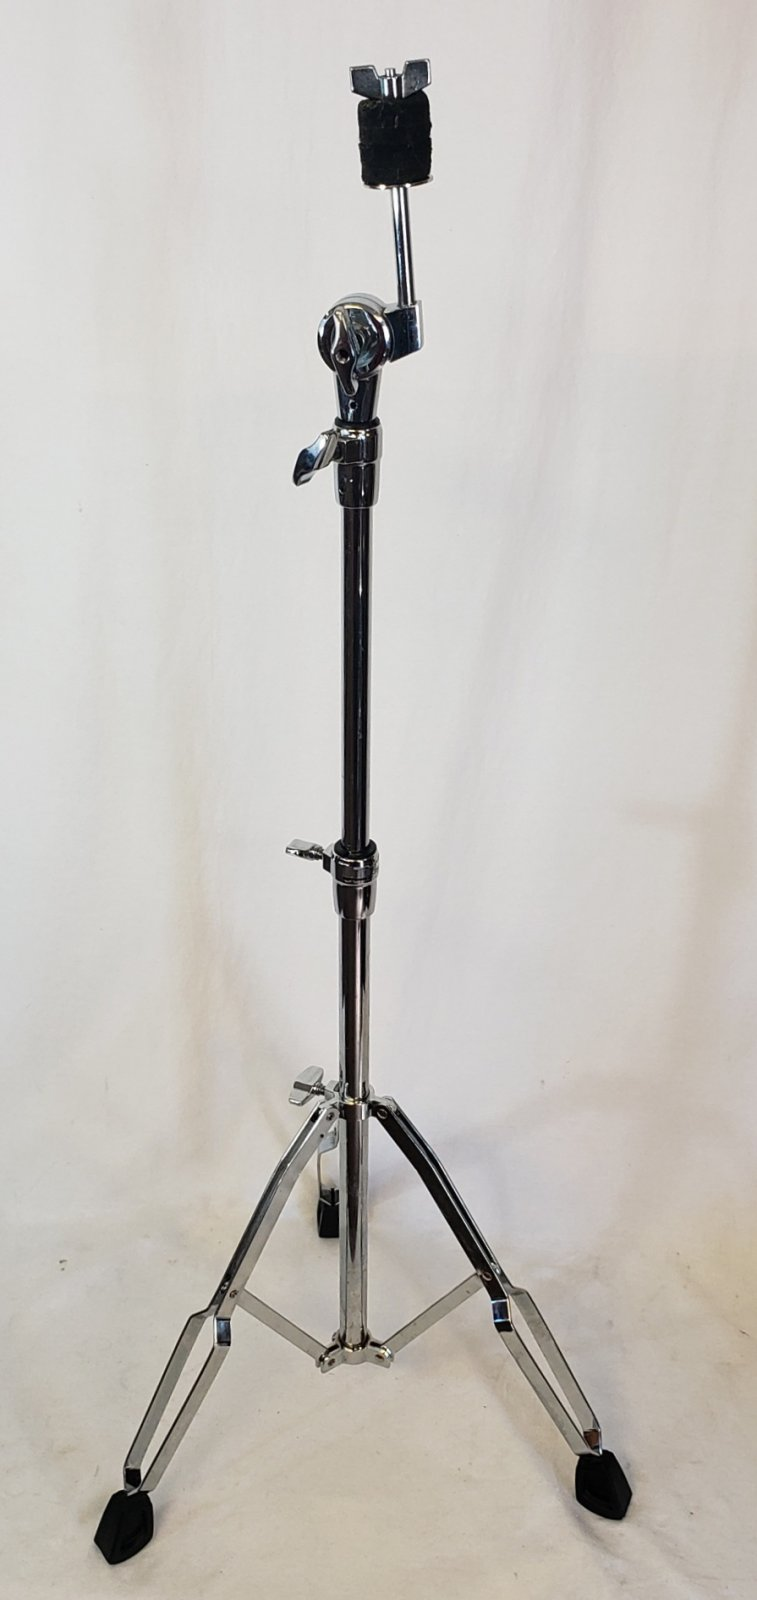 USED MAPEX CYMBAL STAND